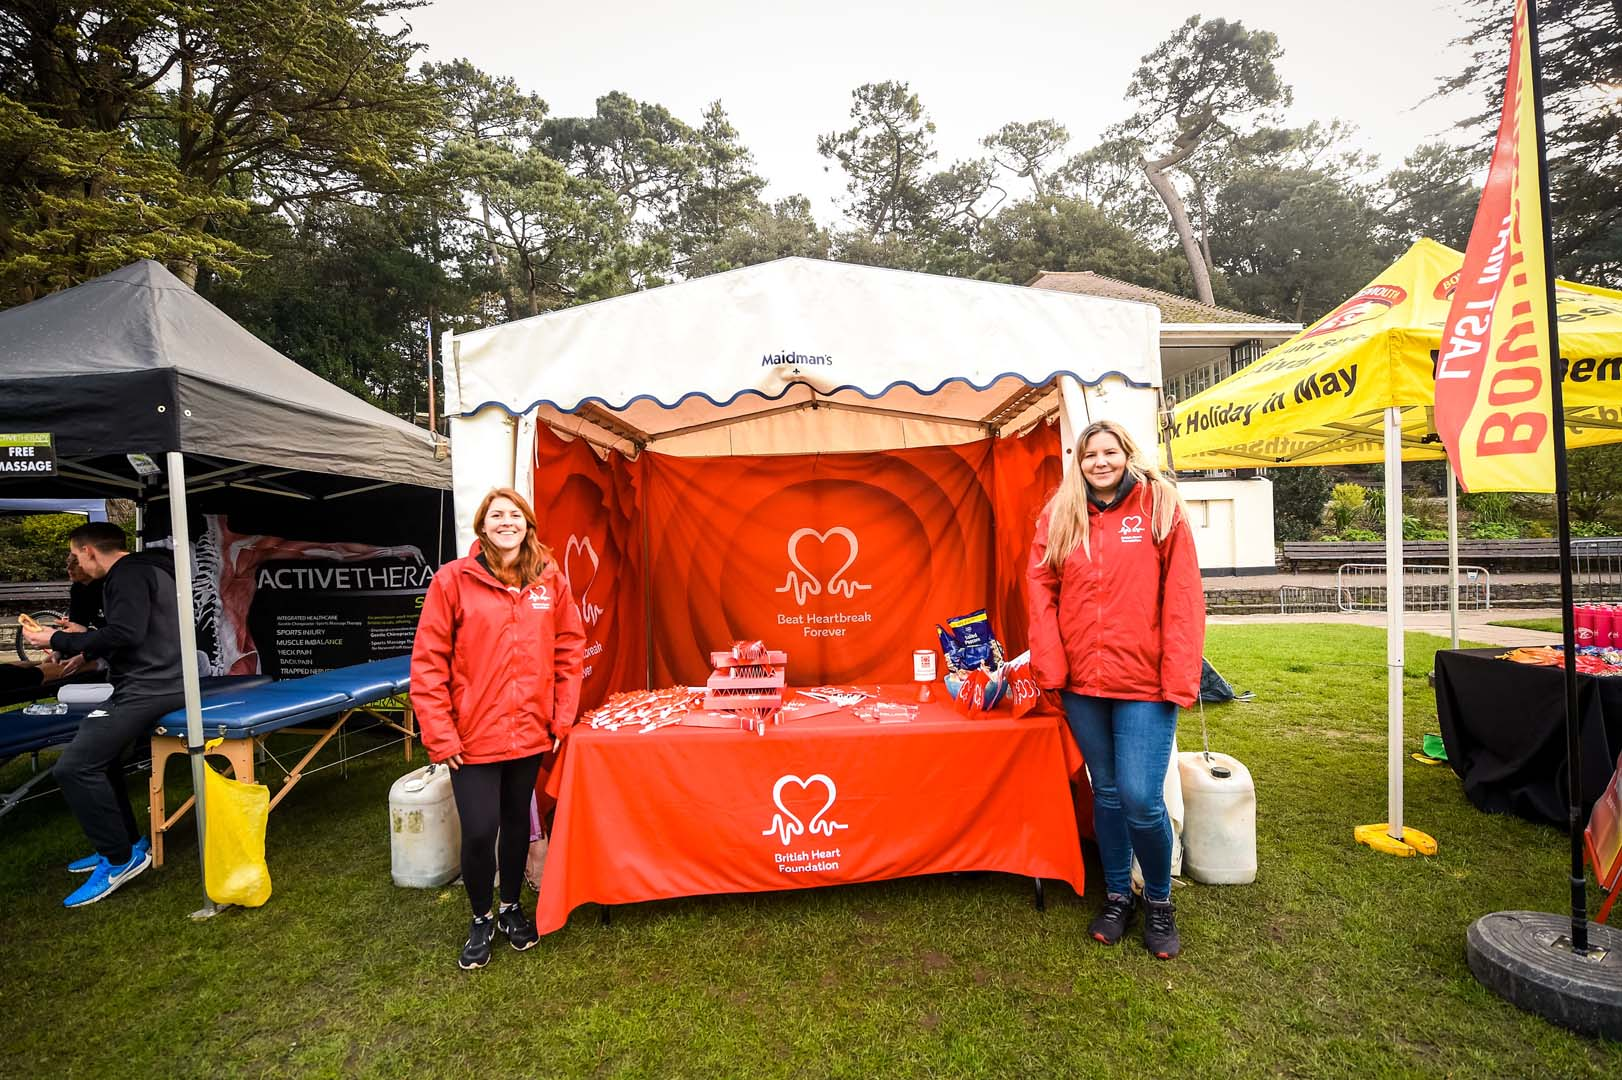 British heart foundation team with their stand at the Bournemouth bay run